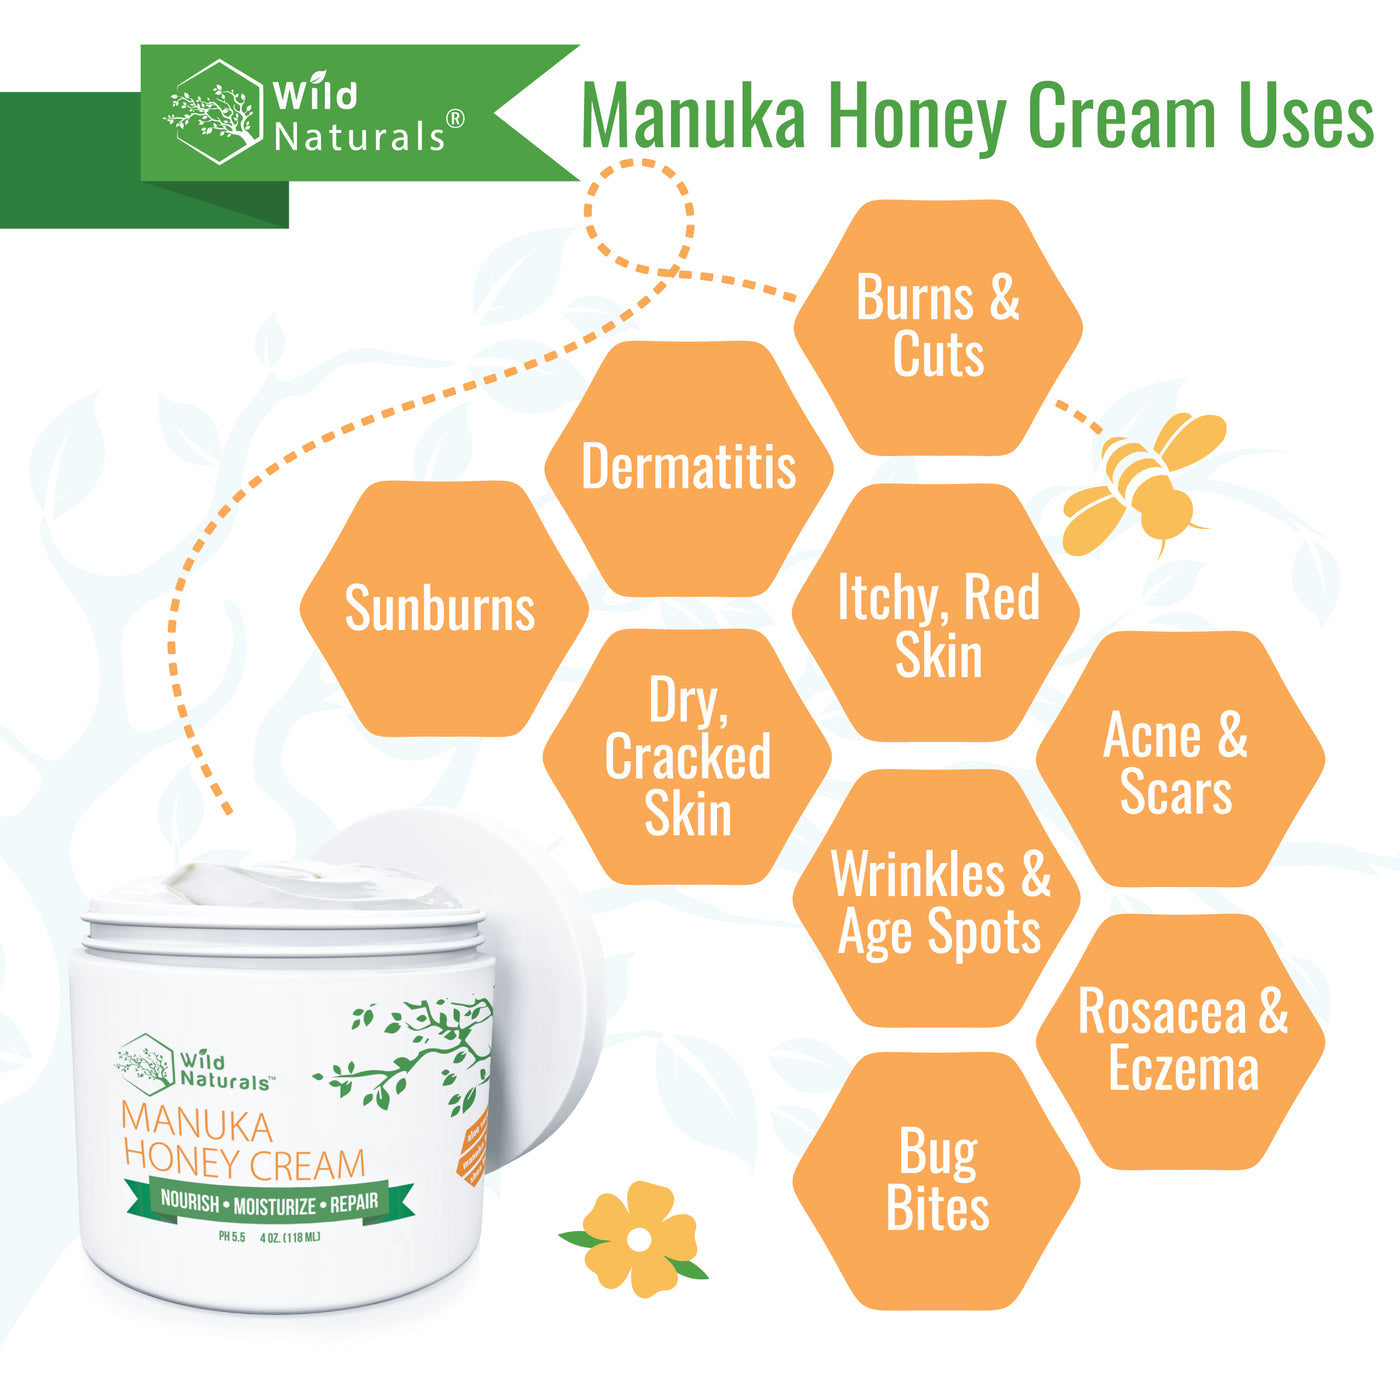 Manuka Honey Cream